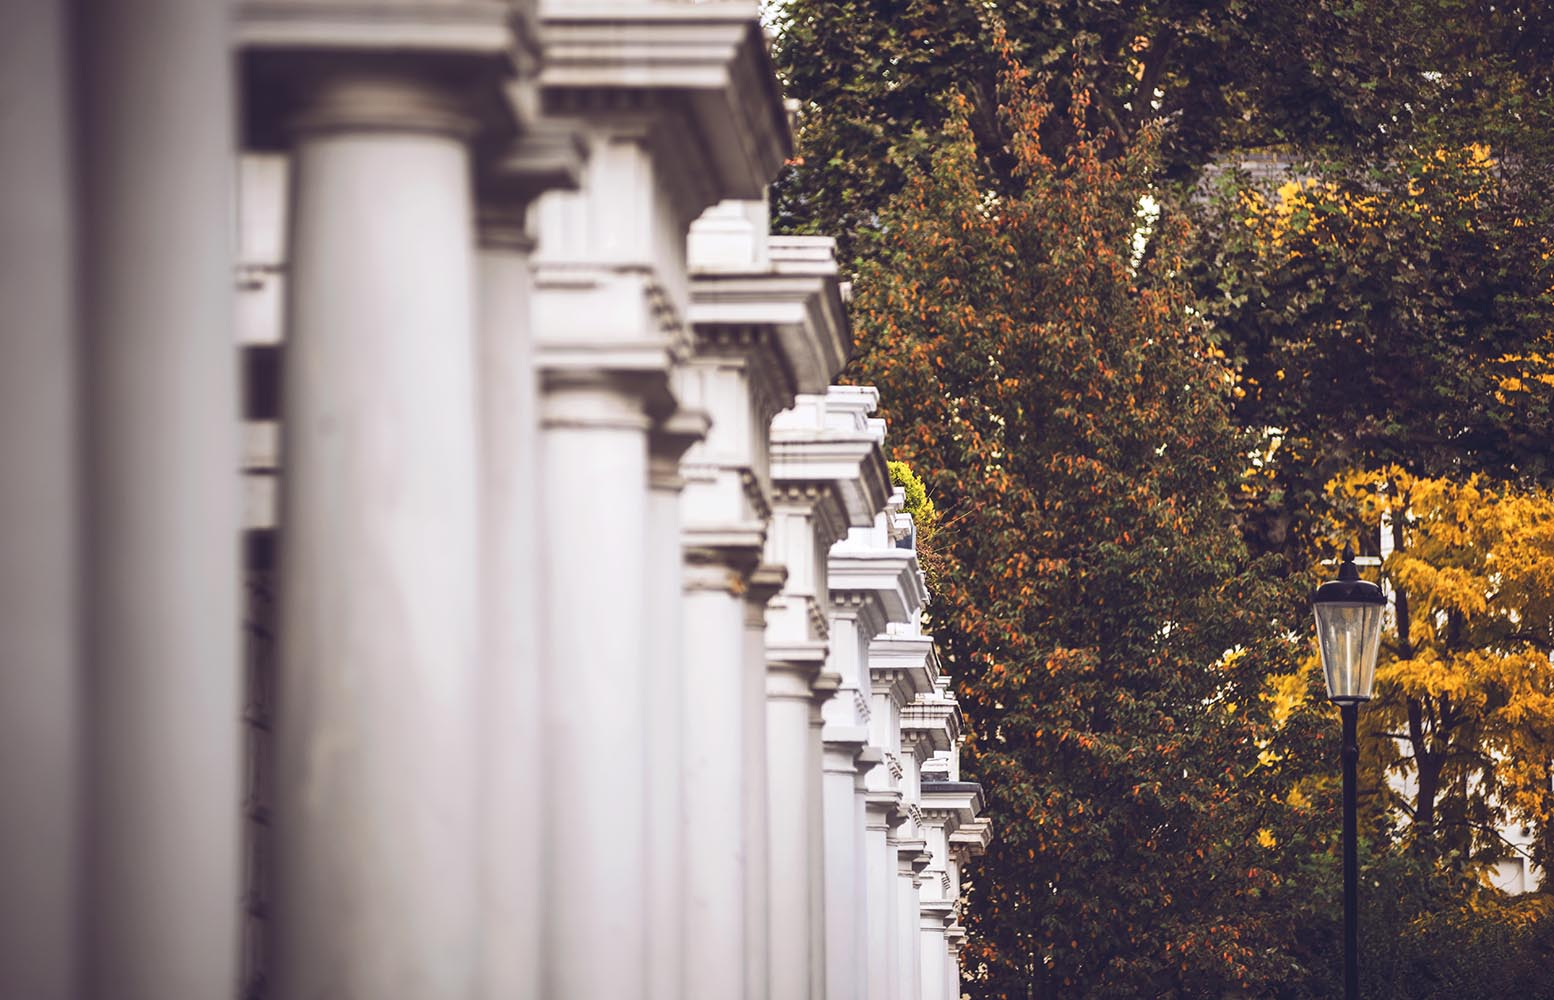 Row of white columns